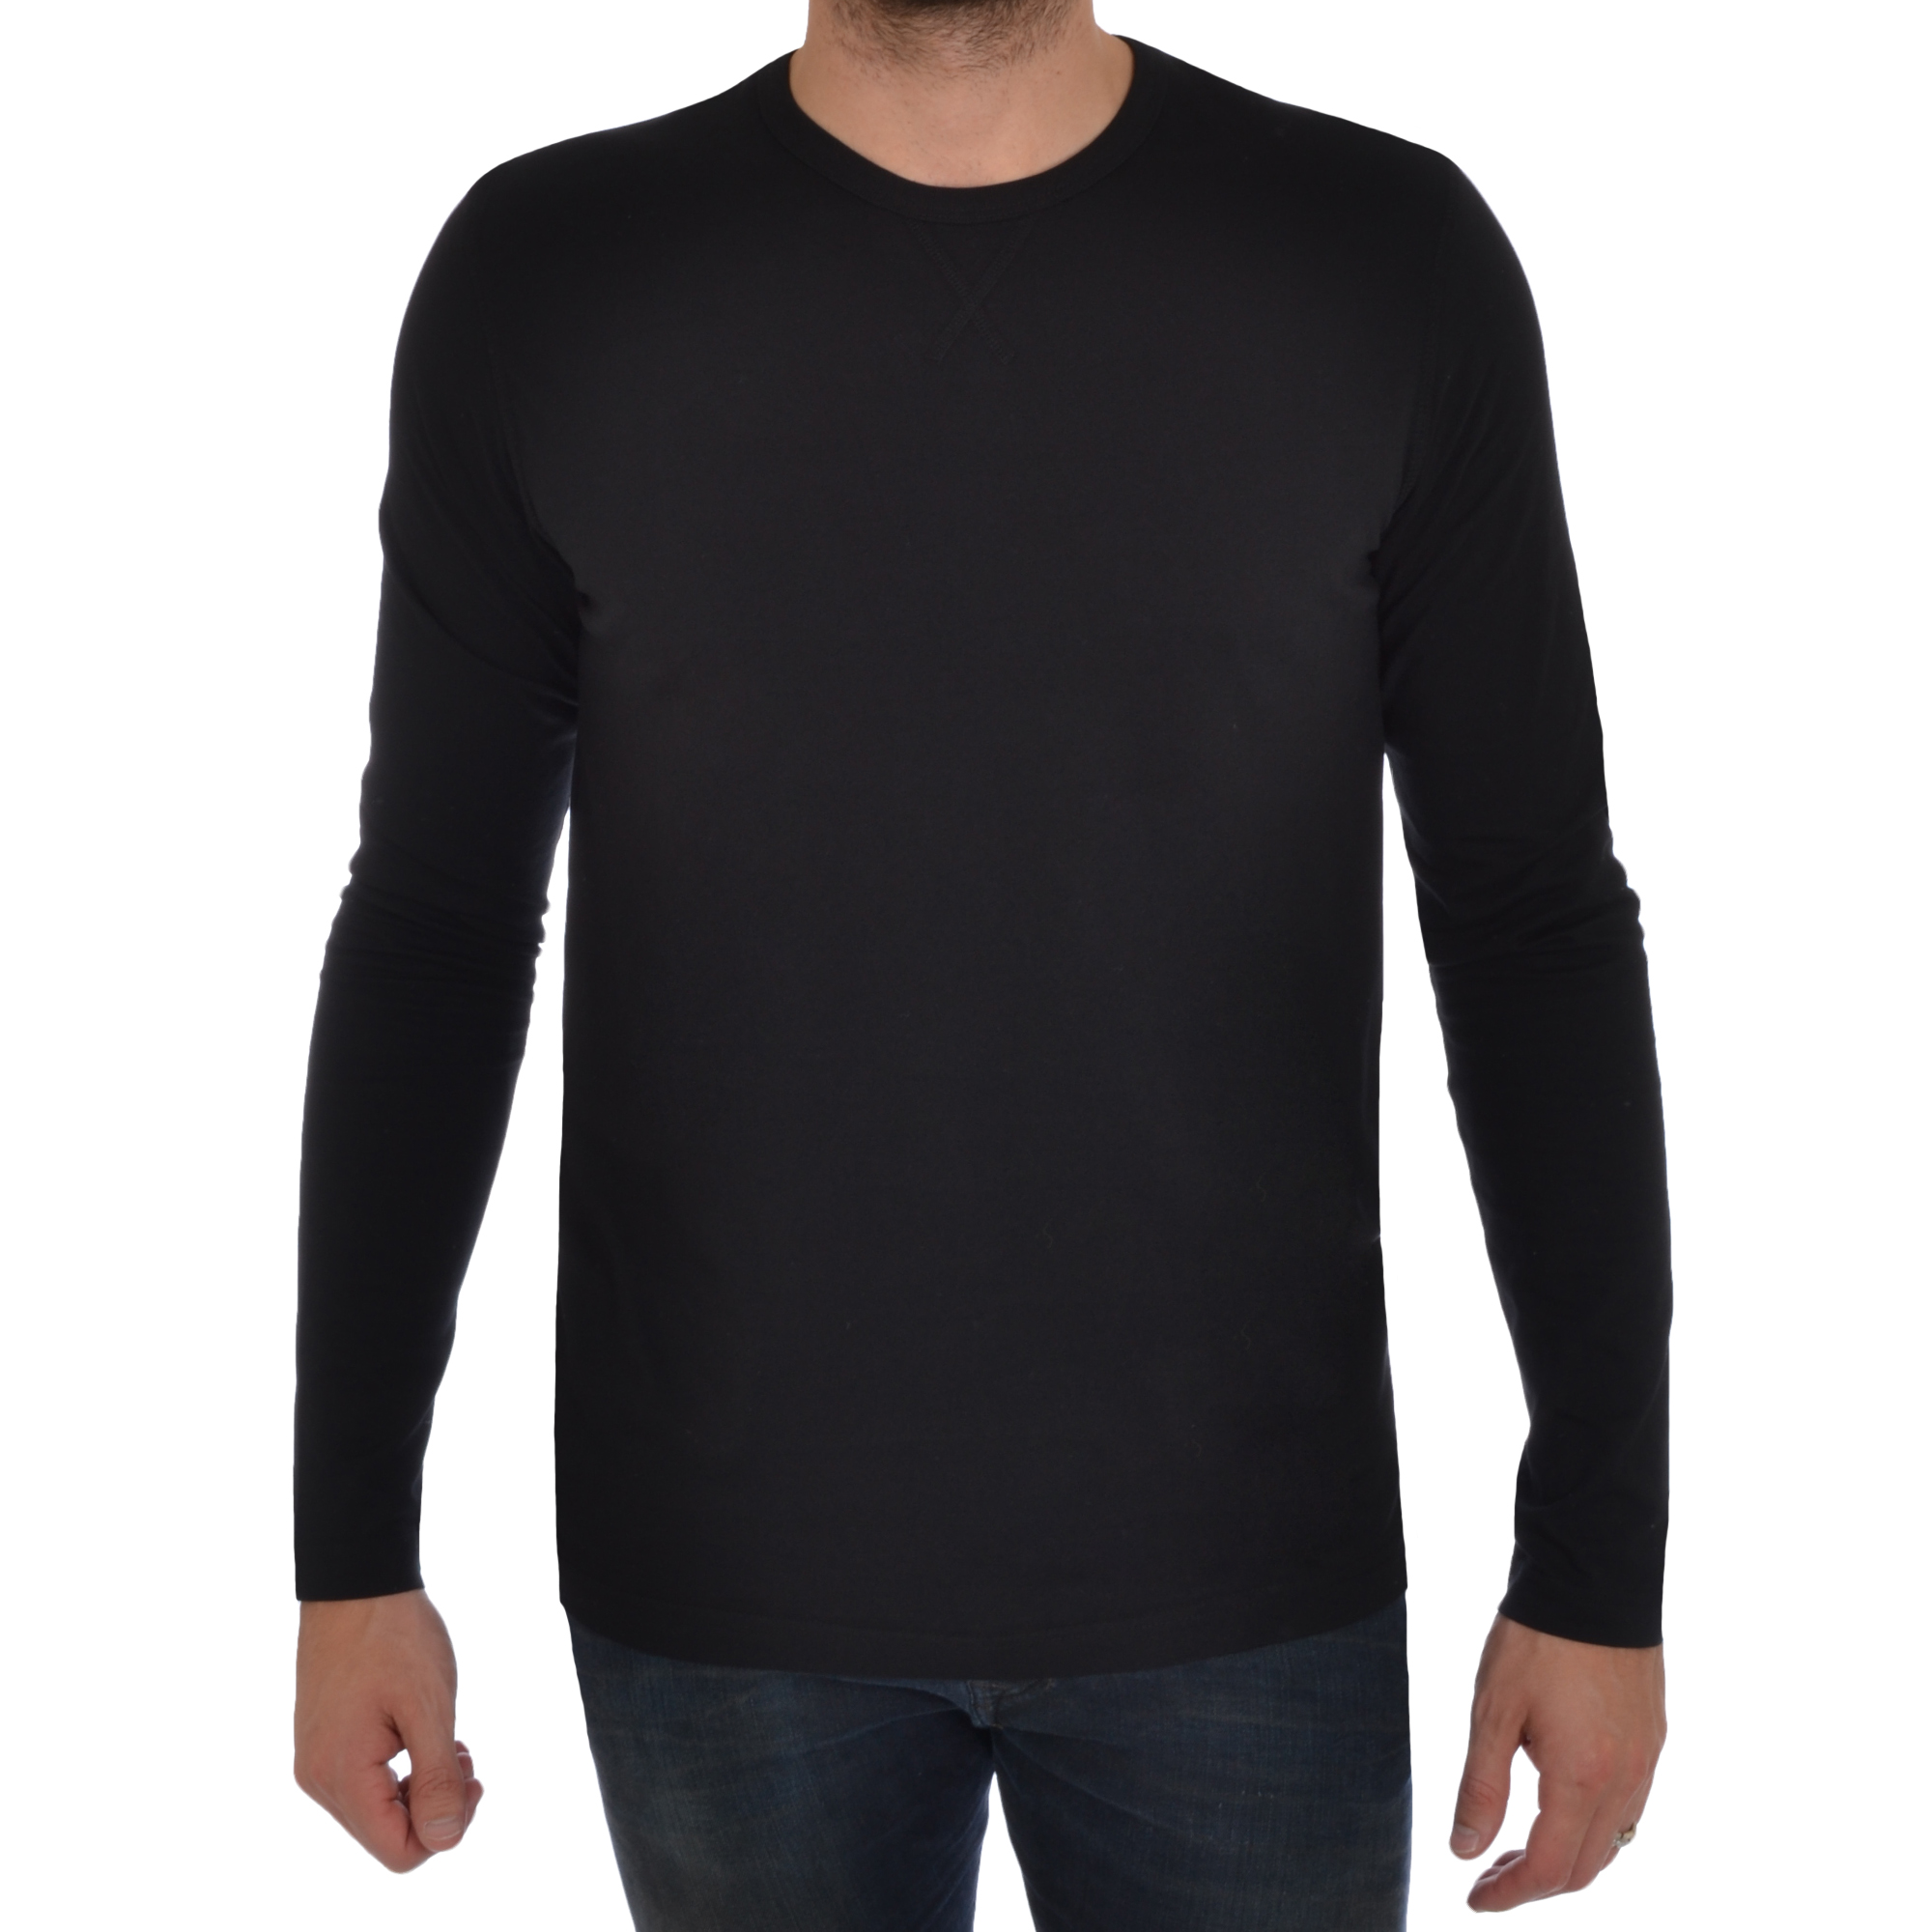 Free Shipping & Free Returns! Shop Men's Nike Long Sleeve Shirts and order online for the finest quality products from the top brands you trust.